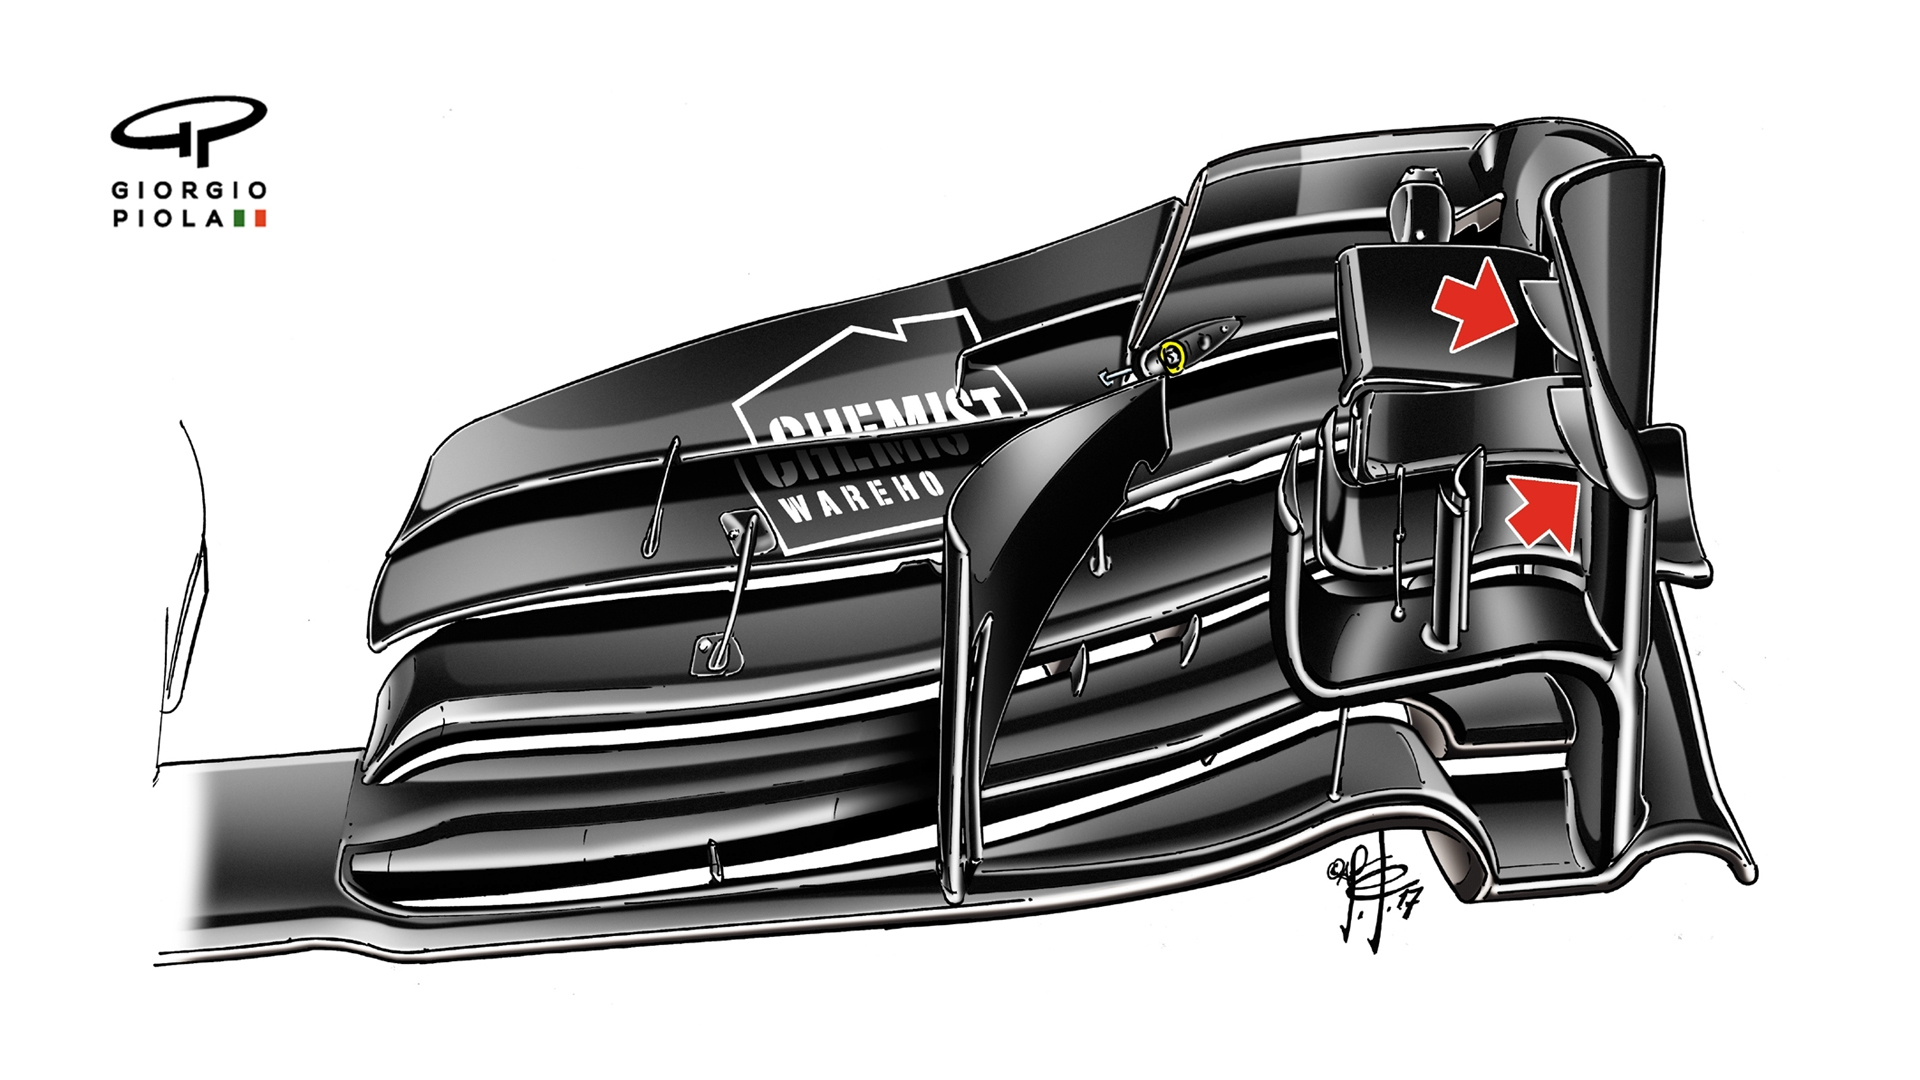 Chassis design of f1 car -  The Efficiency Of The Airflow In This Critical Part Of The Chassis Expect To See A Lot Of Similar Refinements In This Area On Other Cars This Season